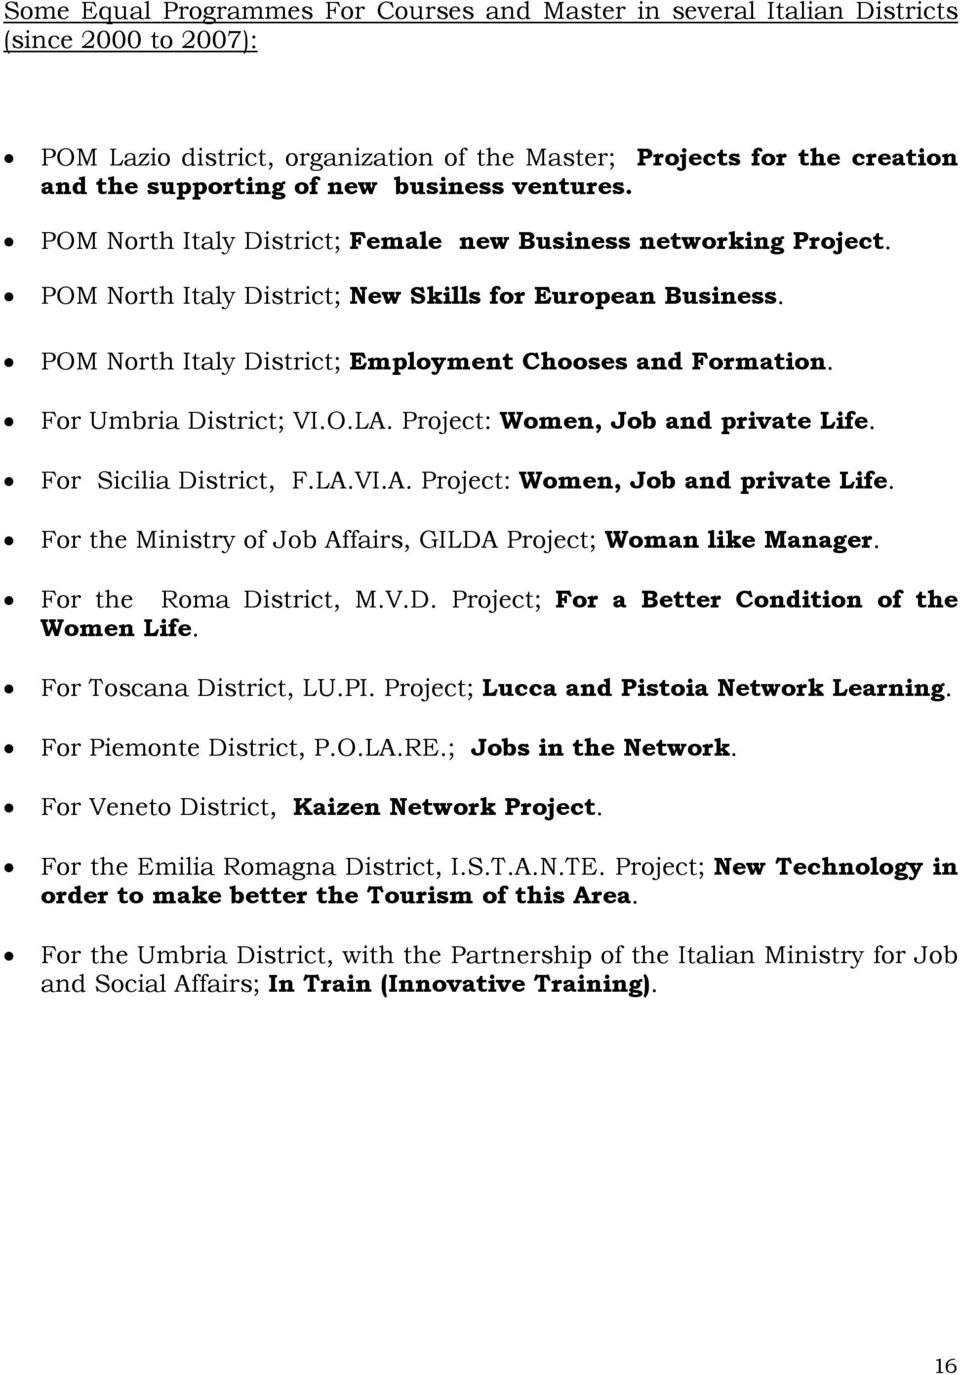 POM North Italy District; Employment Chooses and Formation. For Umbria District; VI.O.LA. Project: Women, Job and private Life. For Sicilia District, F.LA.VI.A. Project: Women, Job and private Life. For the Ministry of Job Affairs, GILDA Project; Woman like Manager.